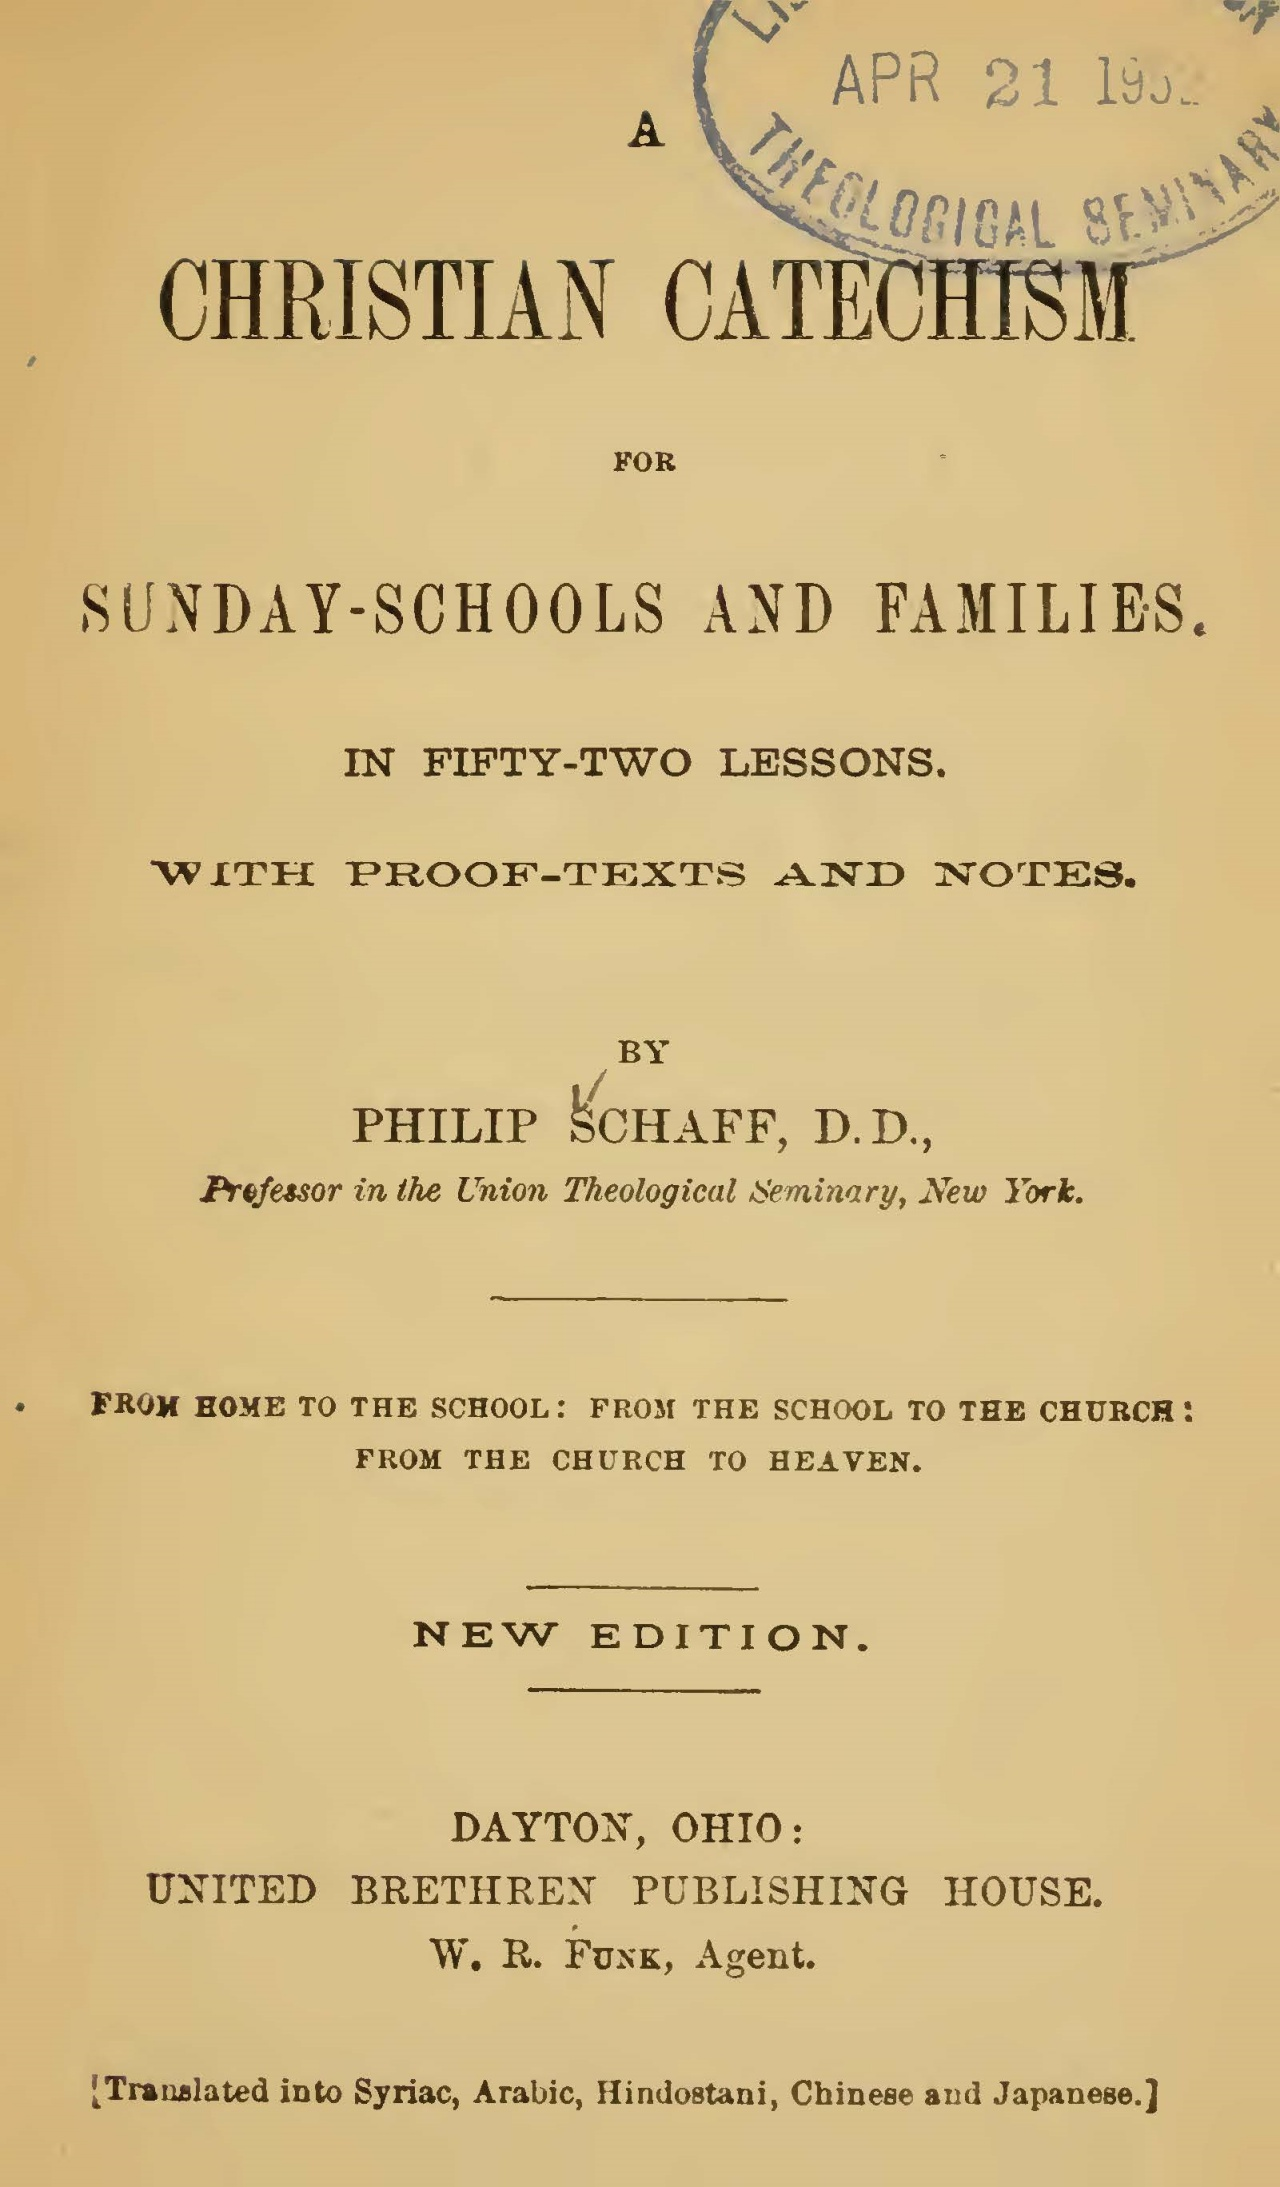 Schaff, Philip, A Christian Catechism Title Page.jpg